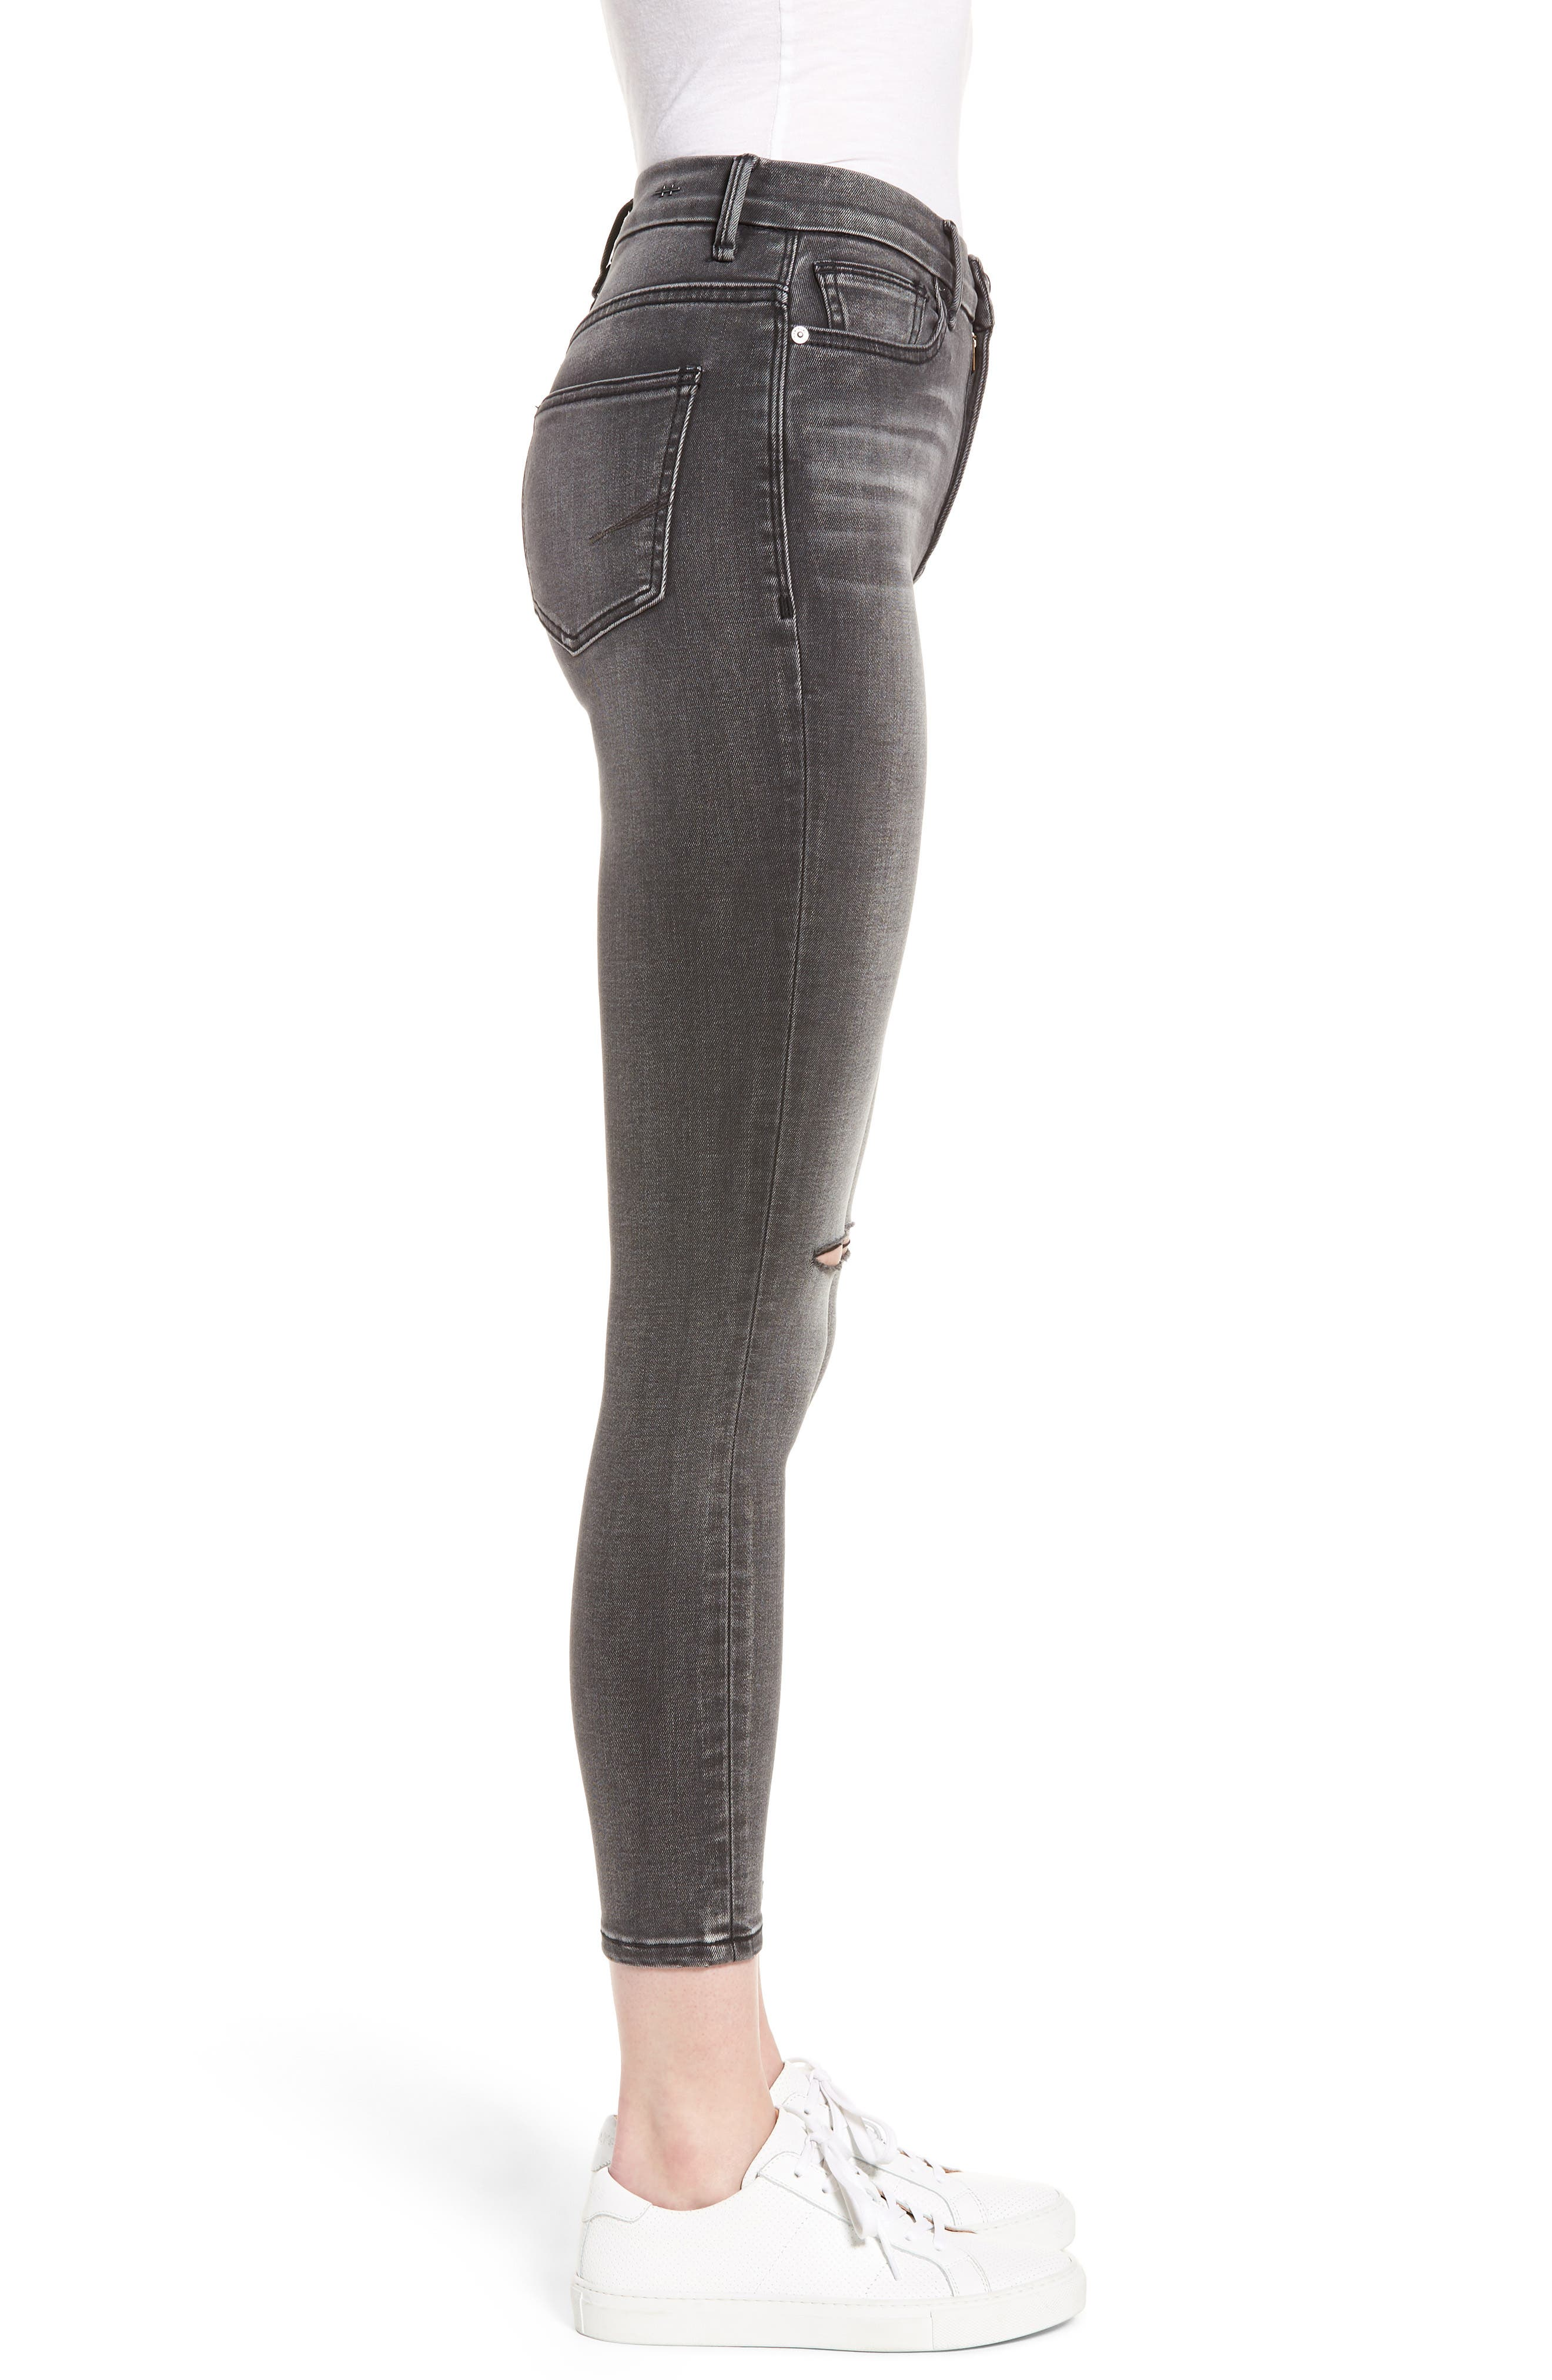 Cressa High Rise Ankle Skinny Jeans,                             Alternate thumbnail 3, color,                             022